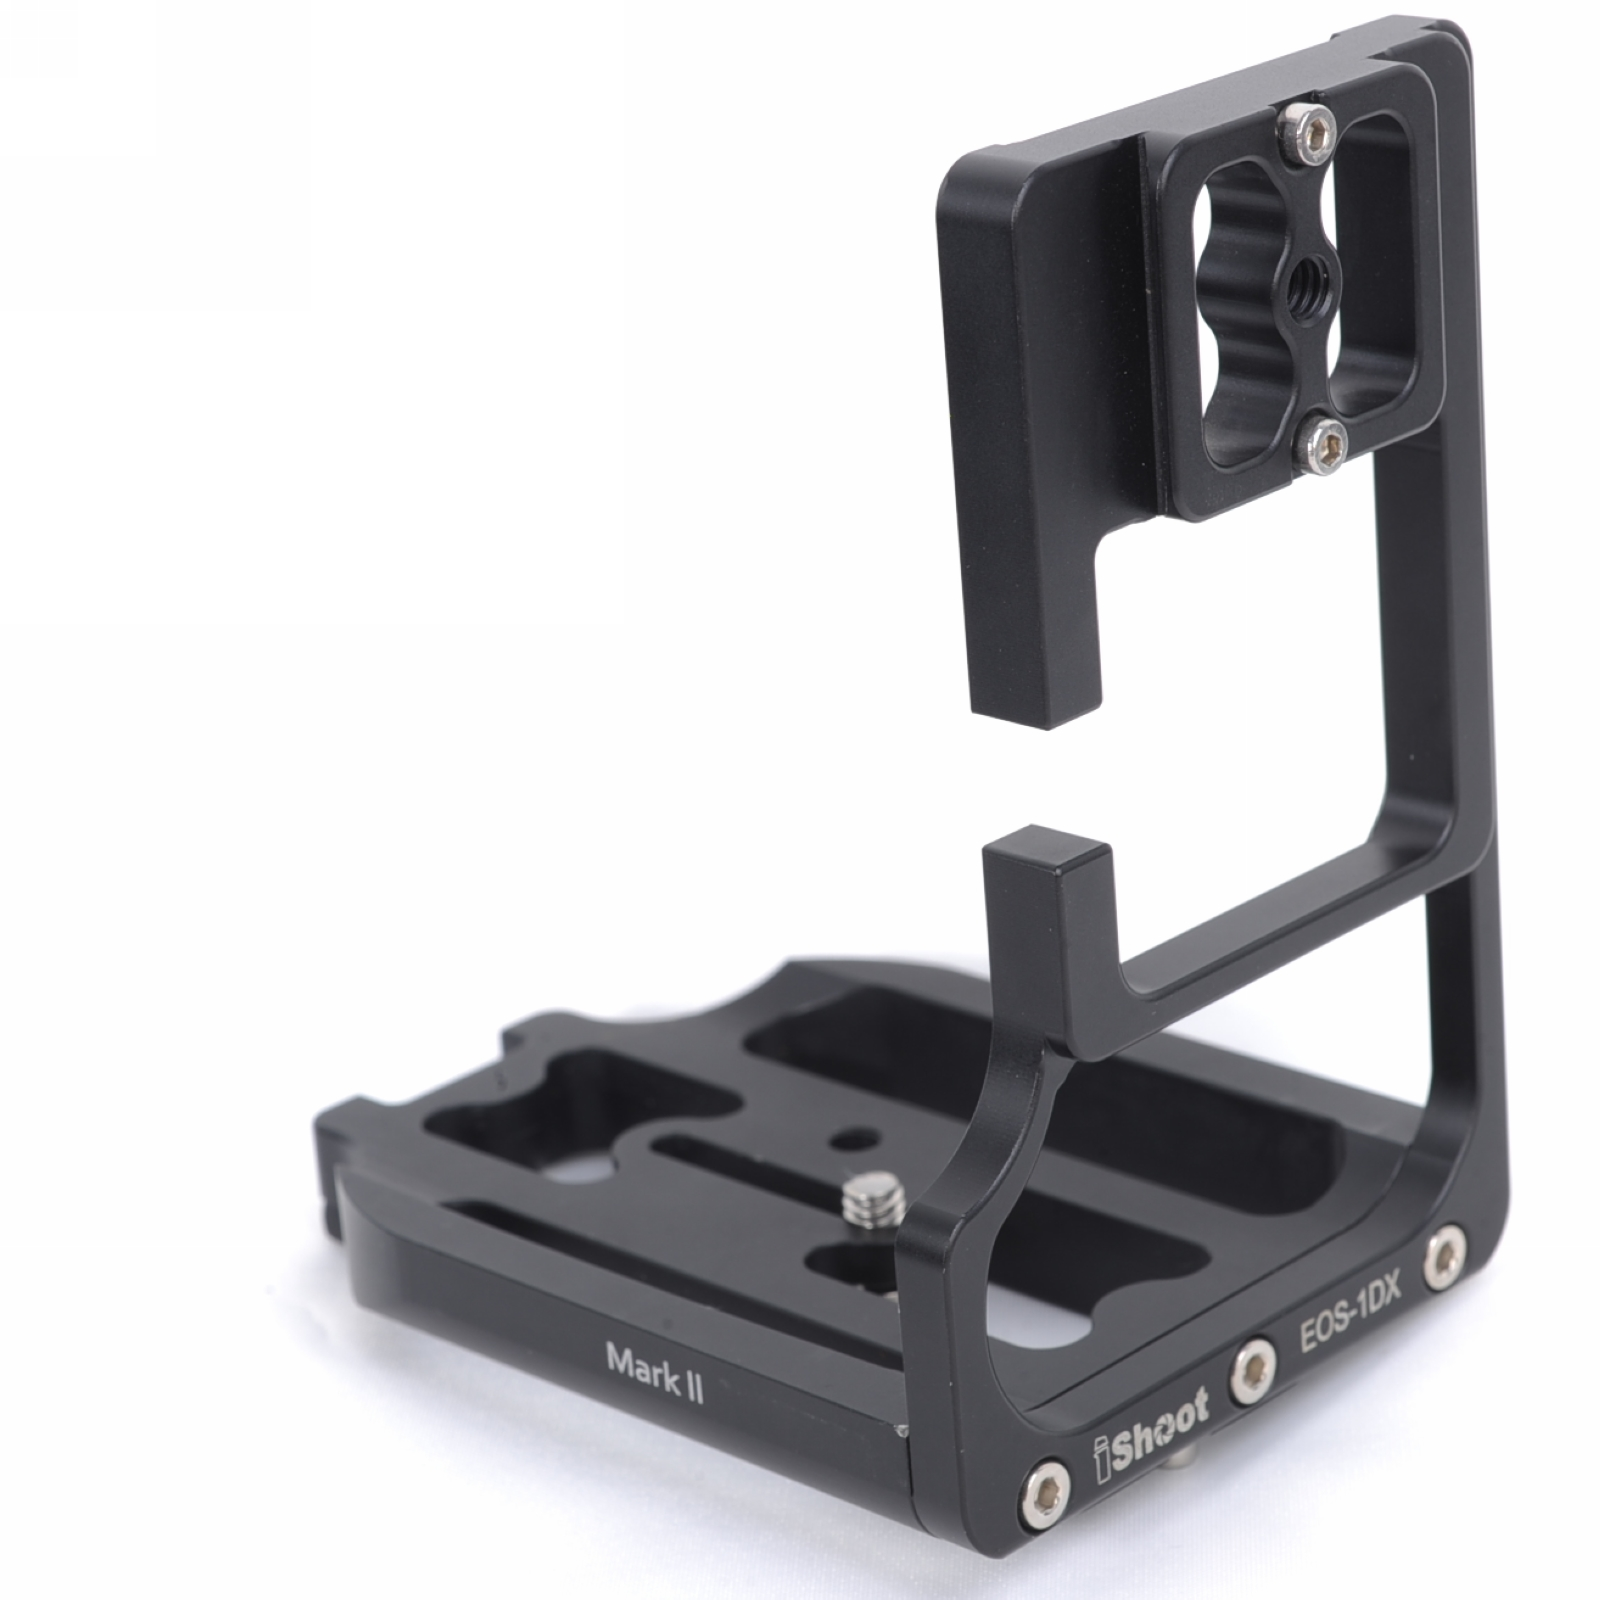 L-shaped Vertical Quick Release Plate Camera Holder Bracket Grip for Canon EOS 1DX & Mark II Used to Arca fit Tripod Ball Head